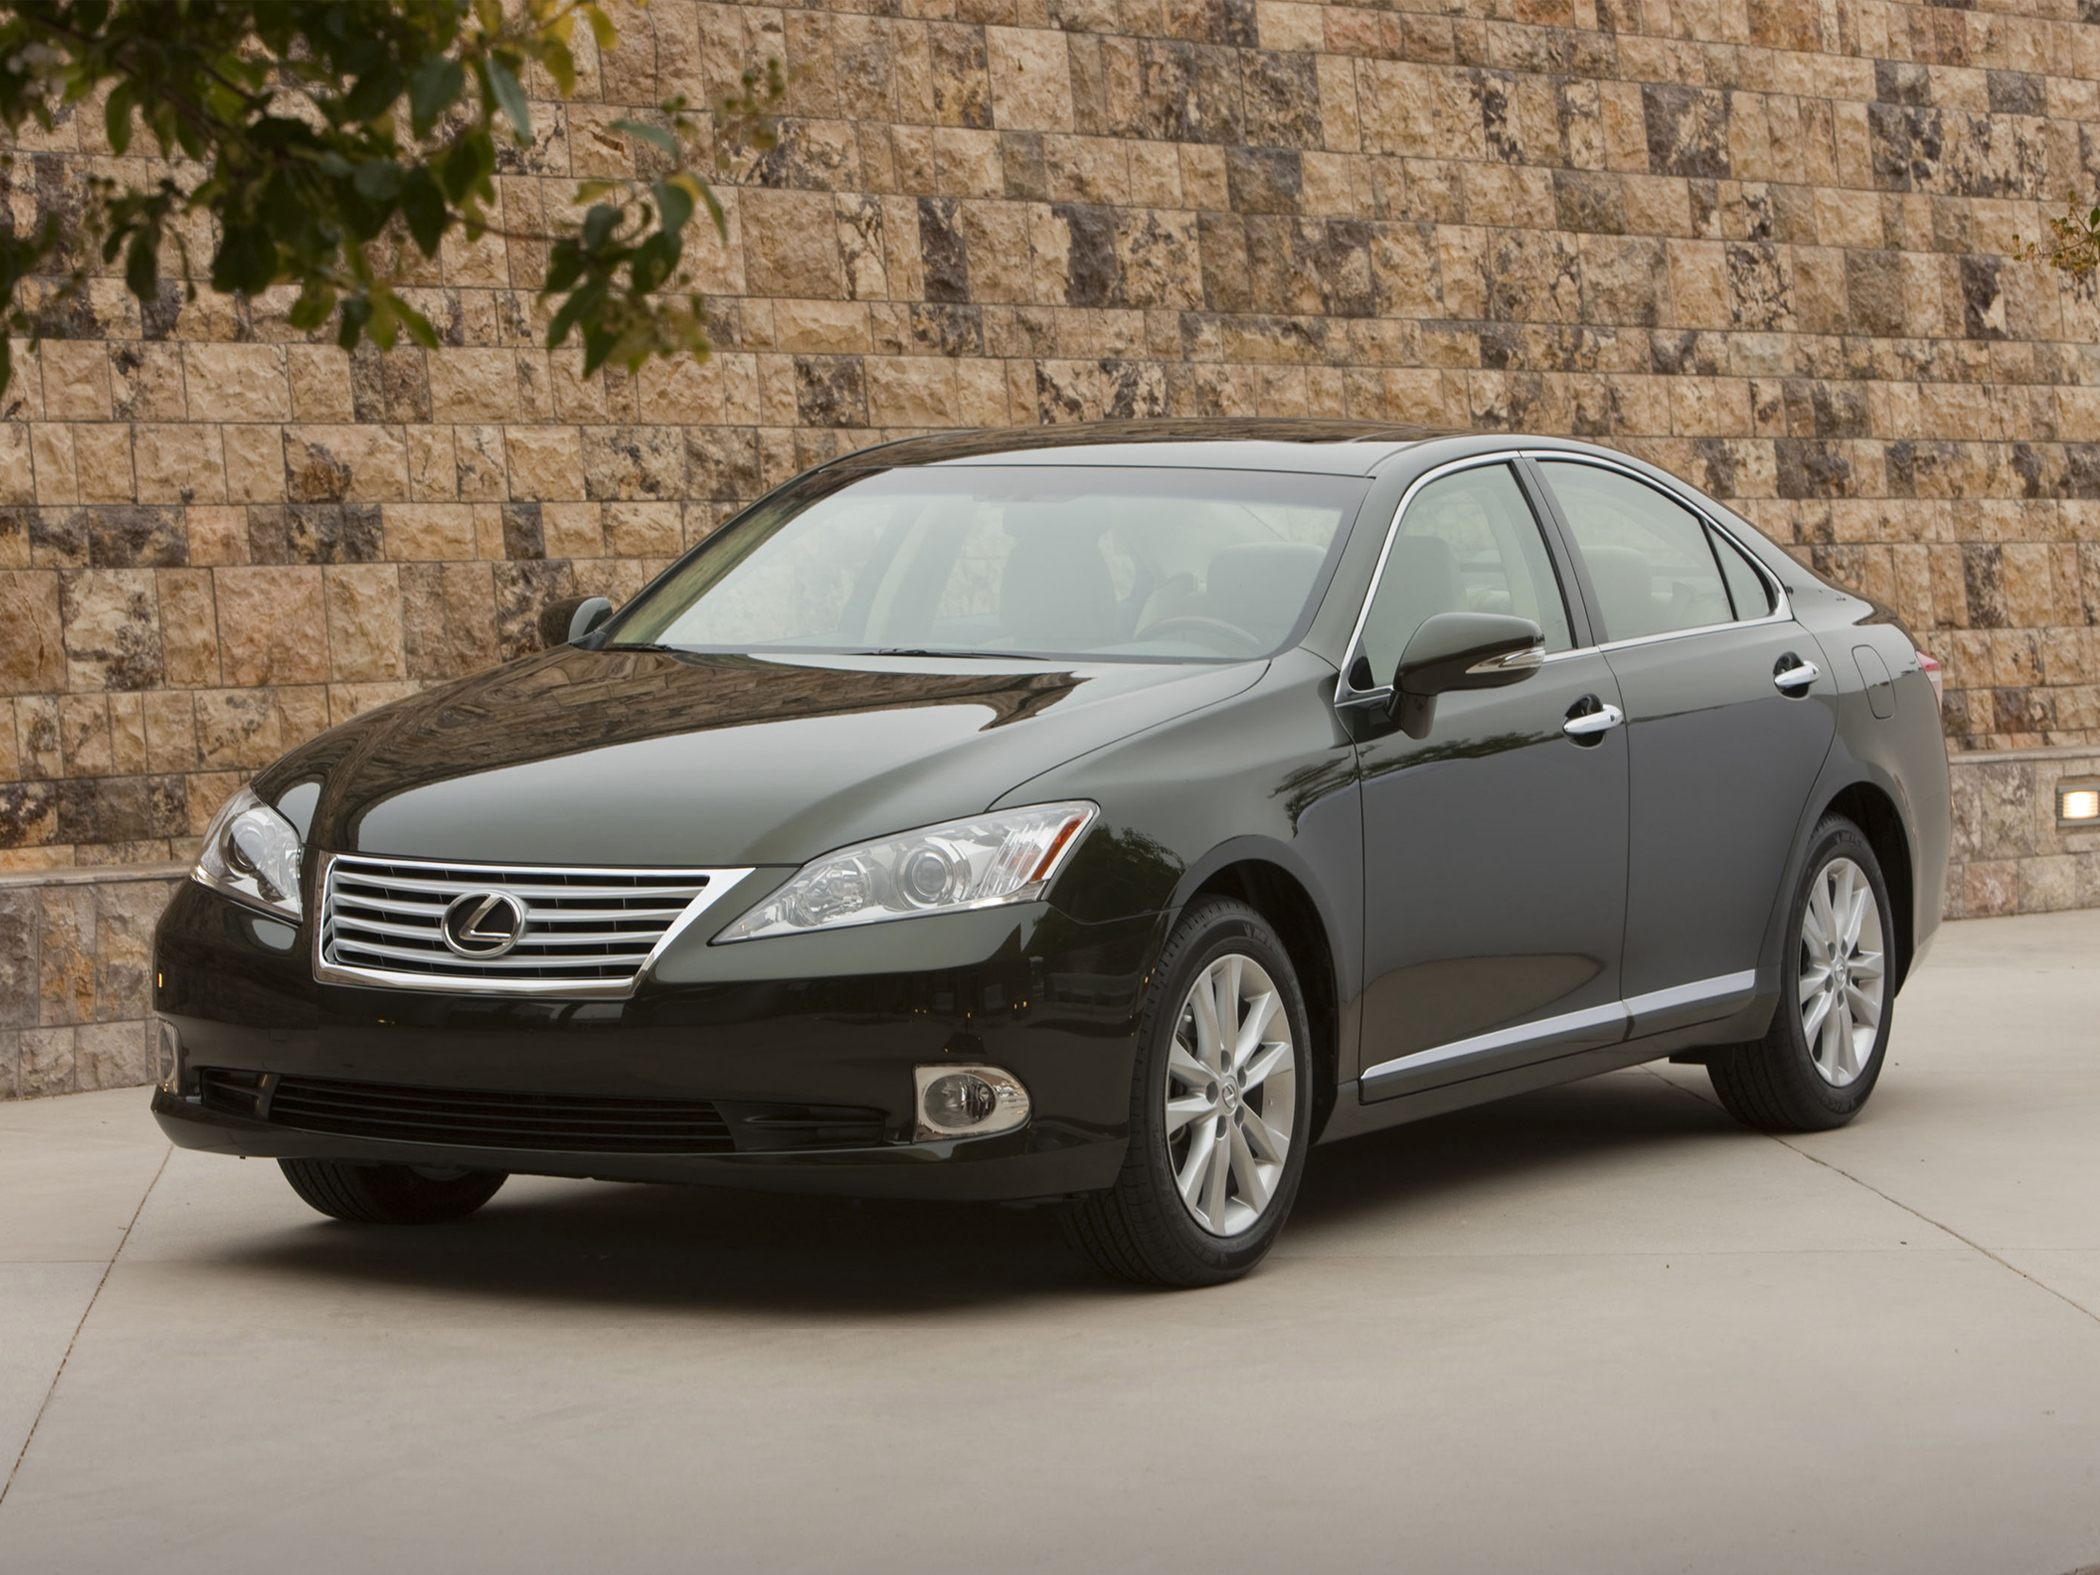 Lexus ES 350 2012 photo - 6